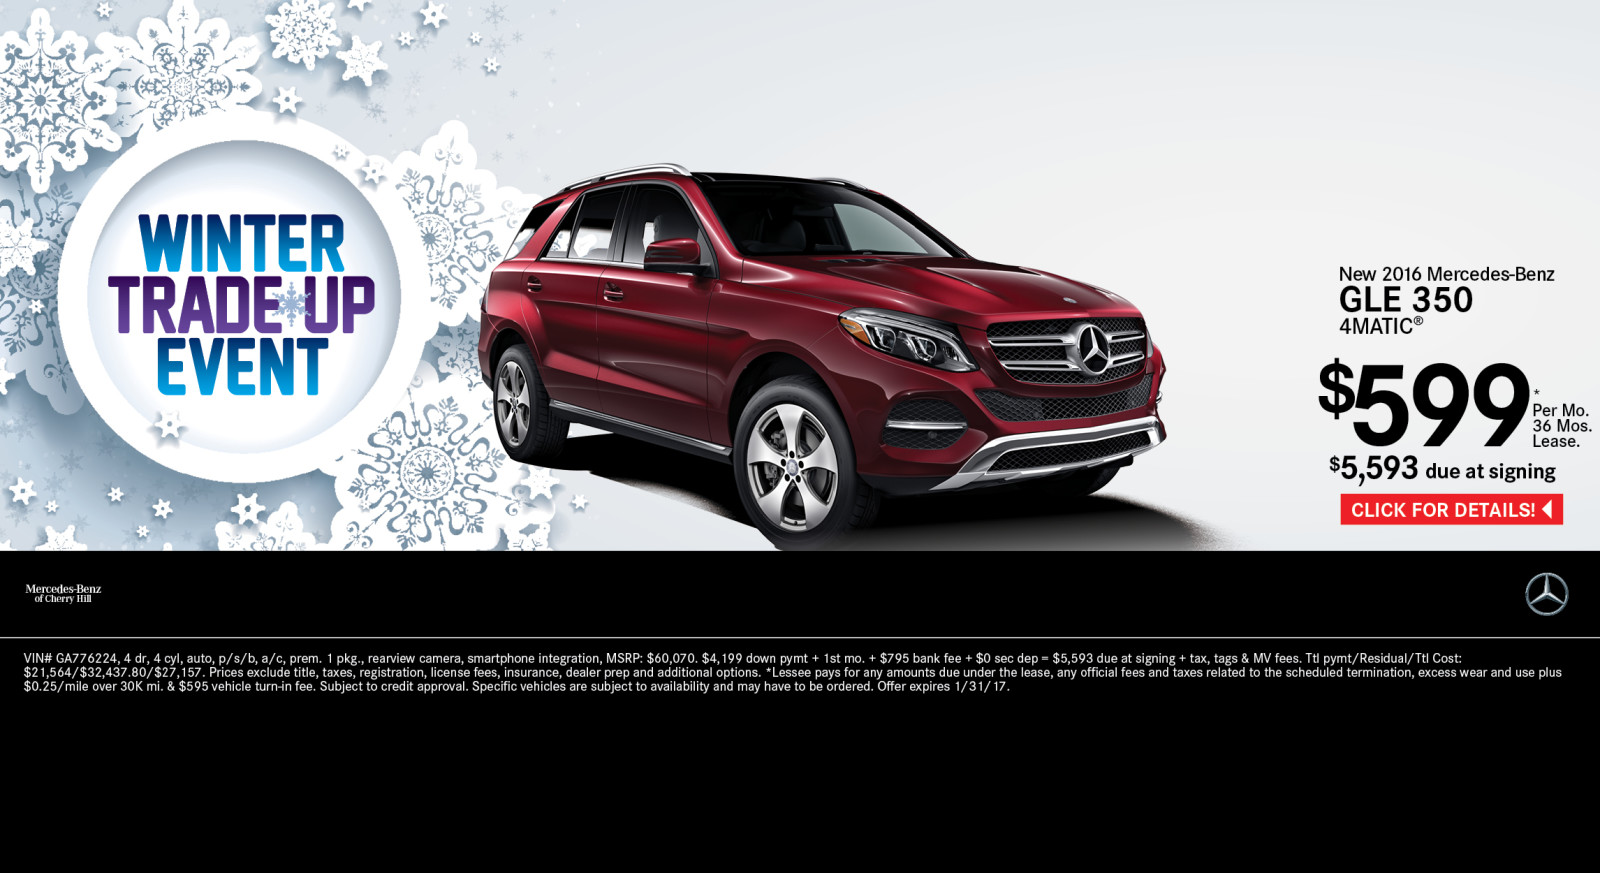 Mercedes benz of cherry hill nj new used car dealer for Mercedes benz of greensboro used cars